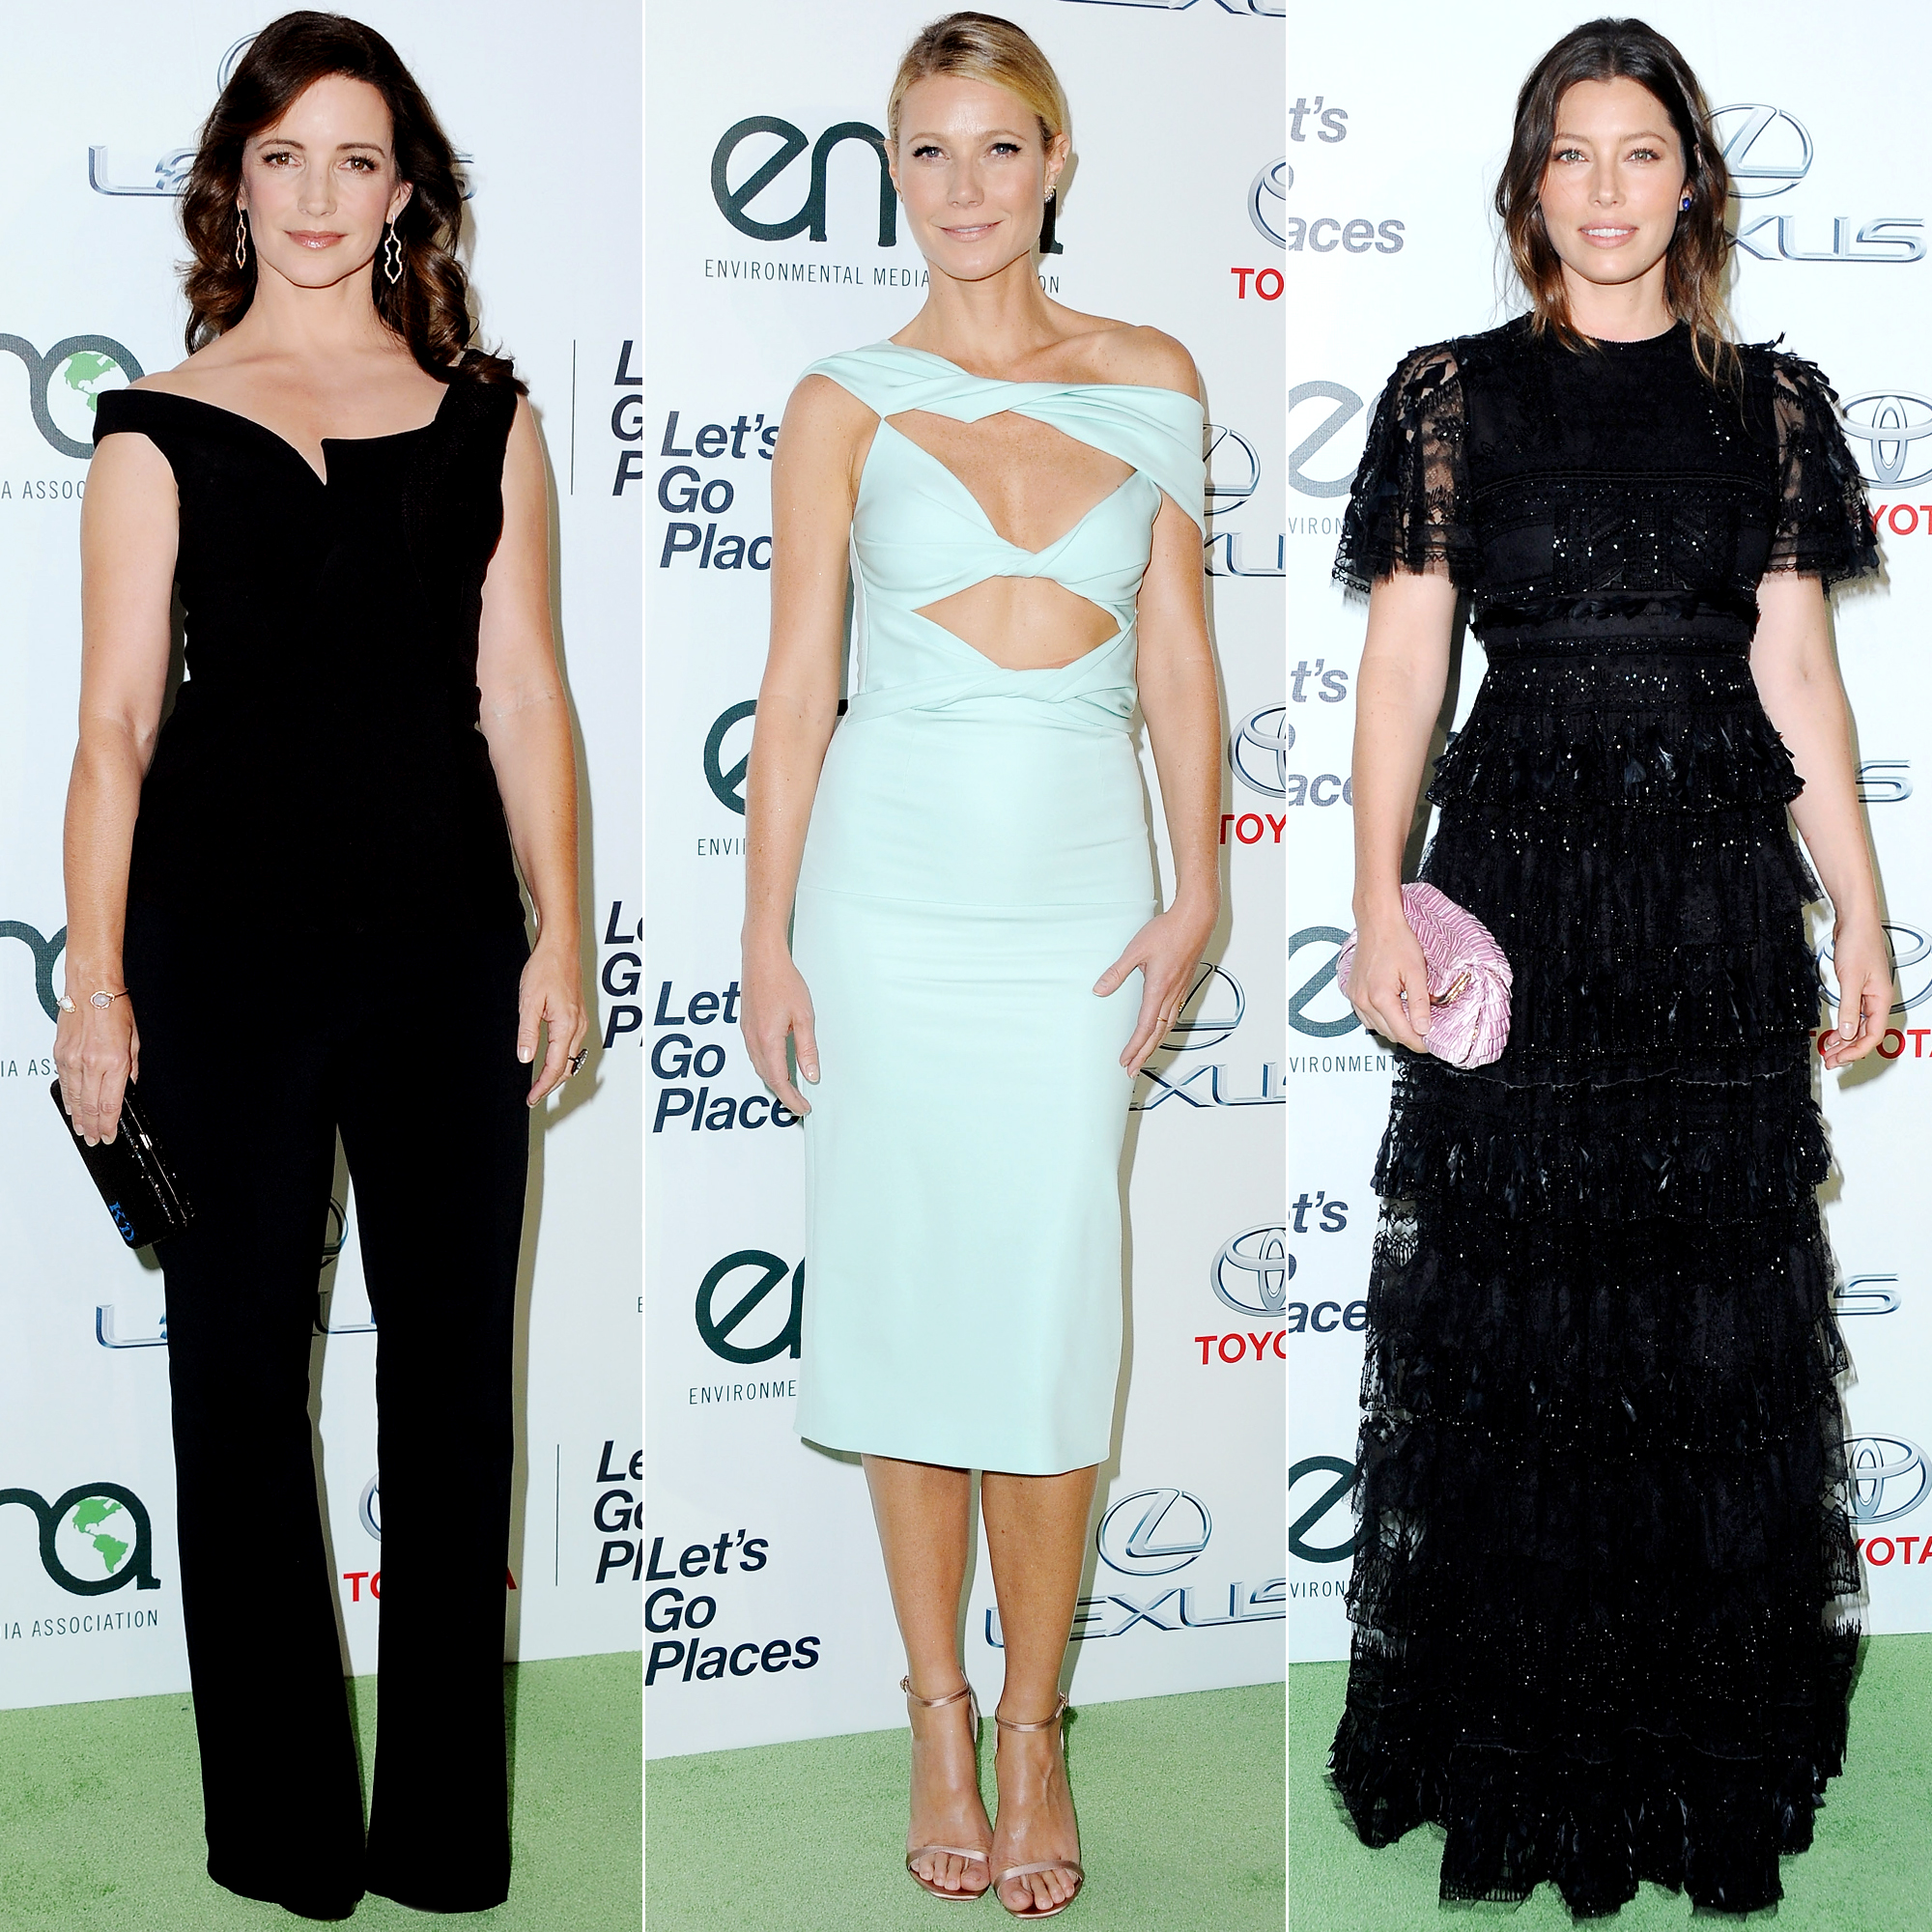 Kristin Davis, Gwyneth Paltrow, and More Stars Step Out to Fight for Environmental Protection